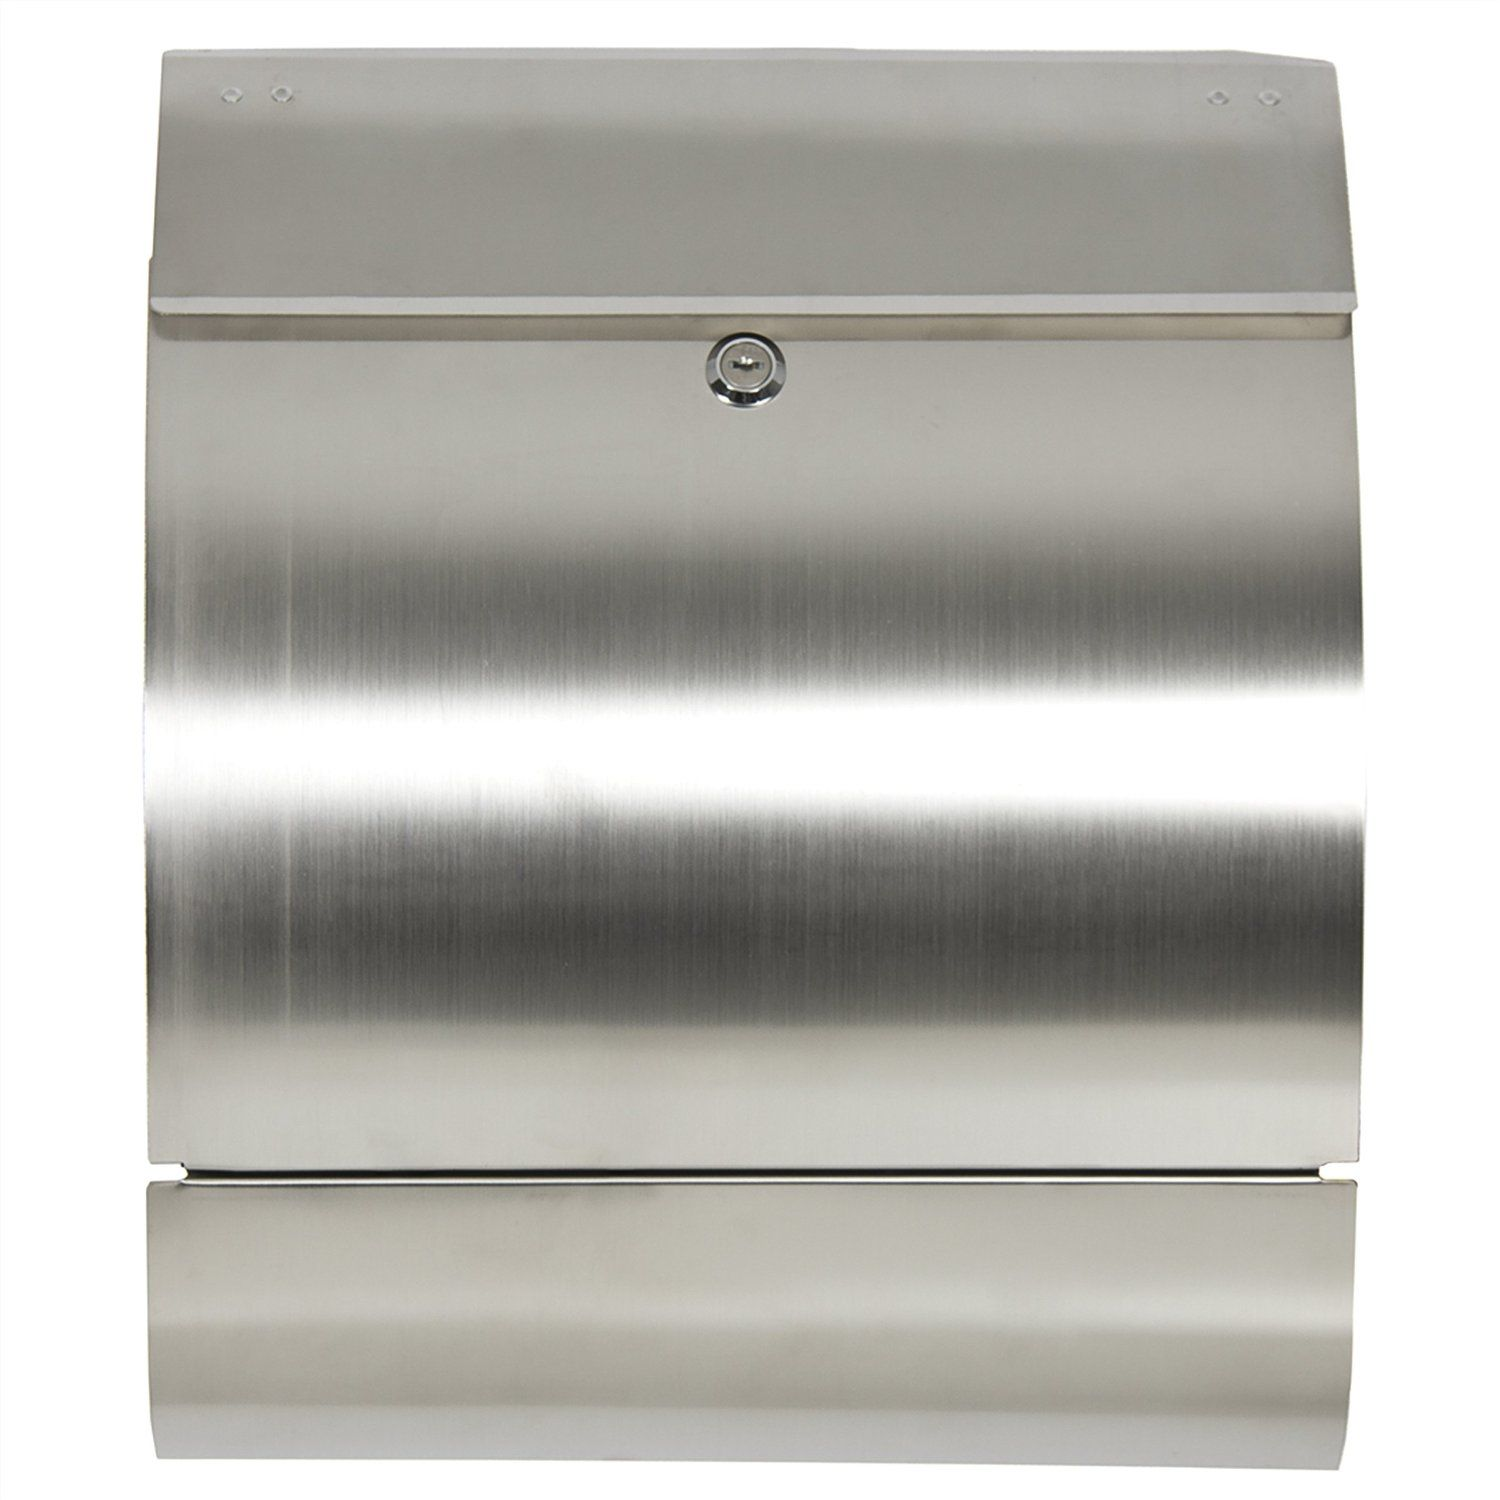 Best choice products sky166 stainless steel mailbox security mailboxes amazon com